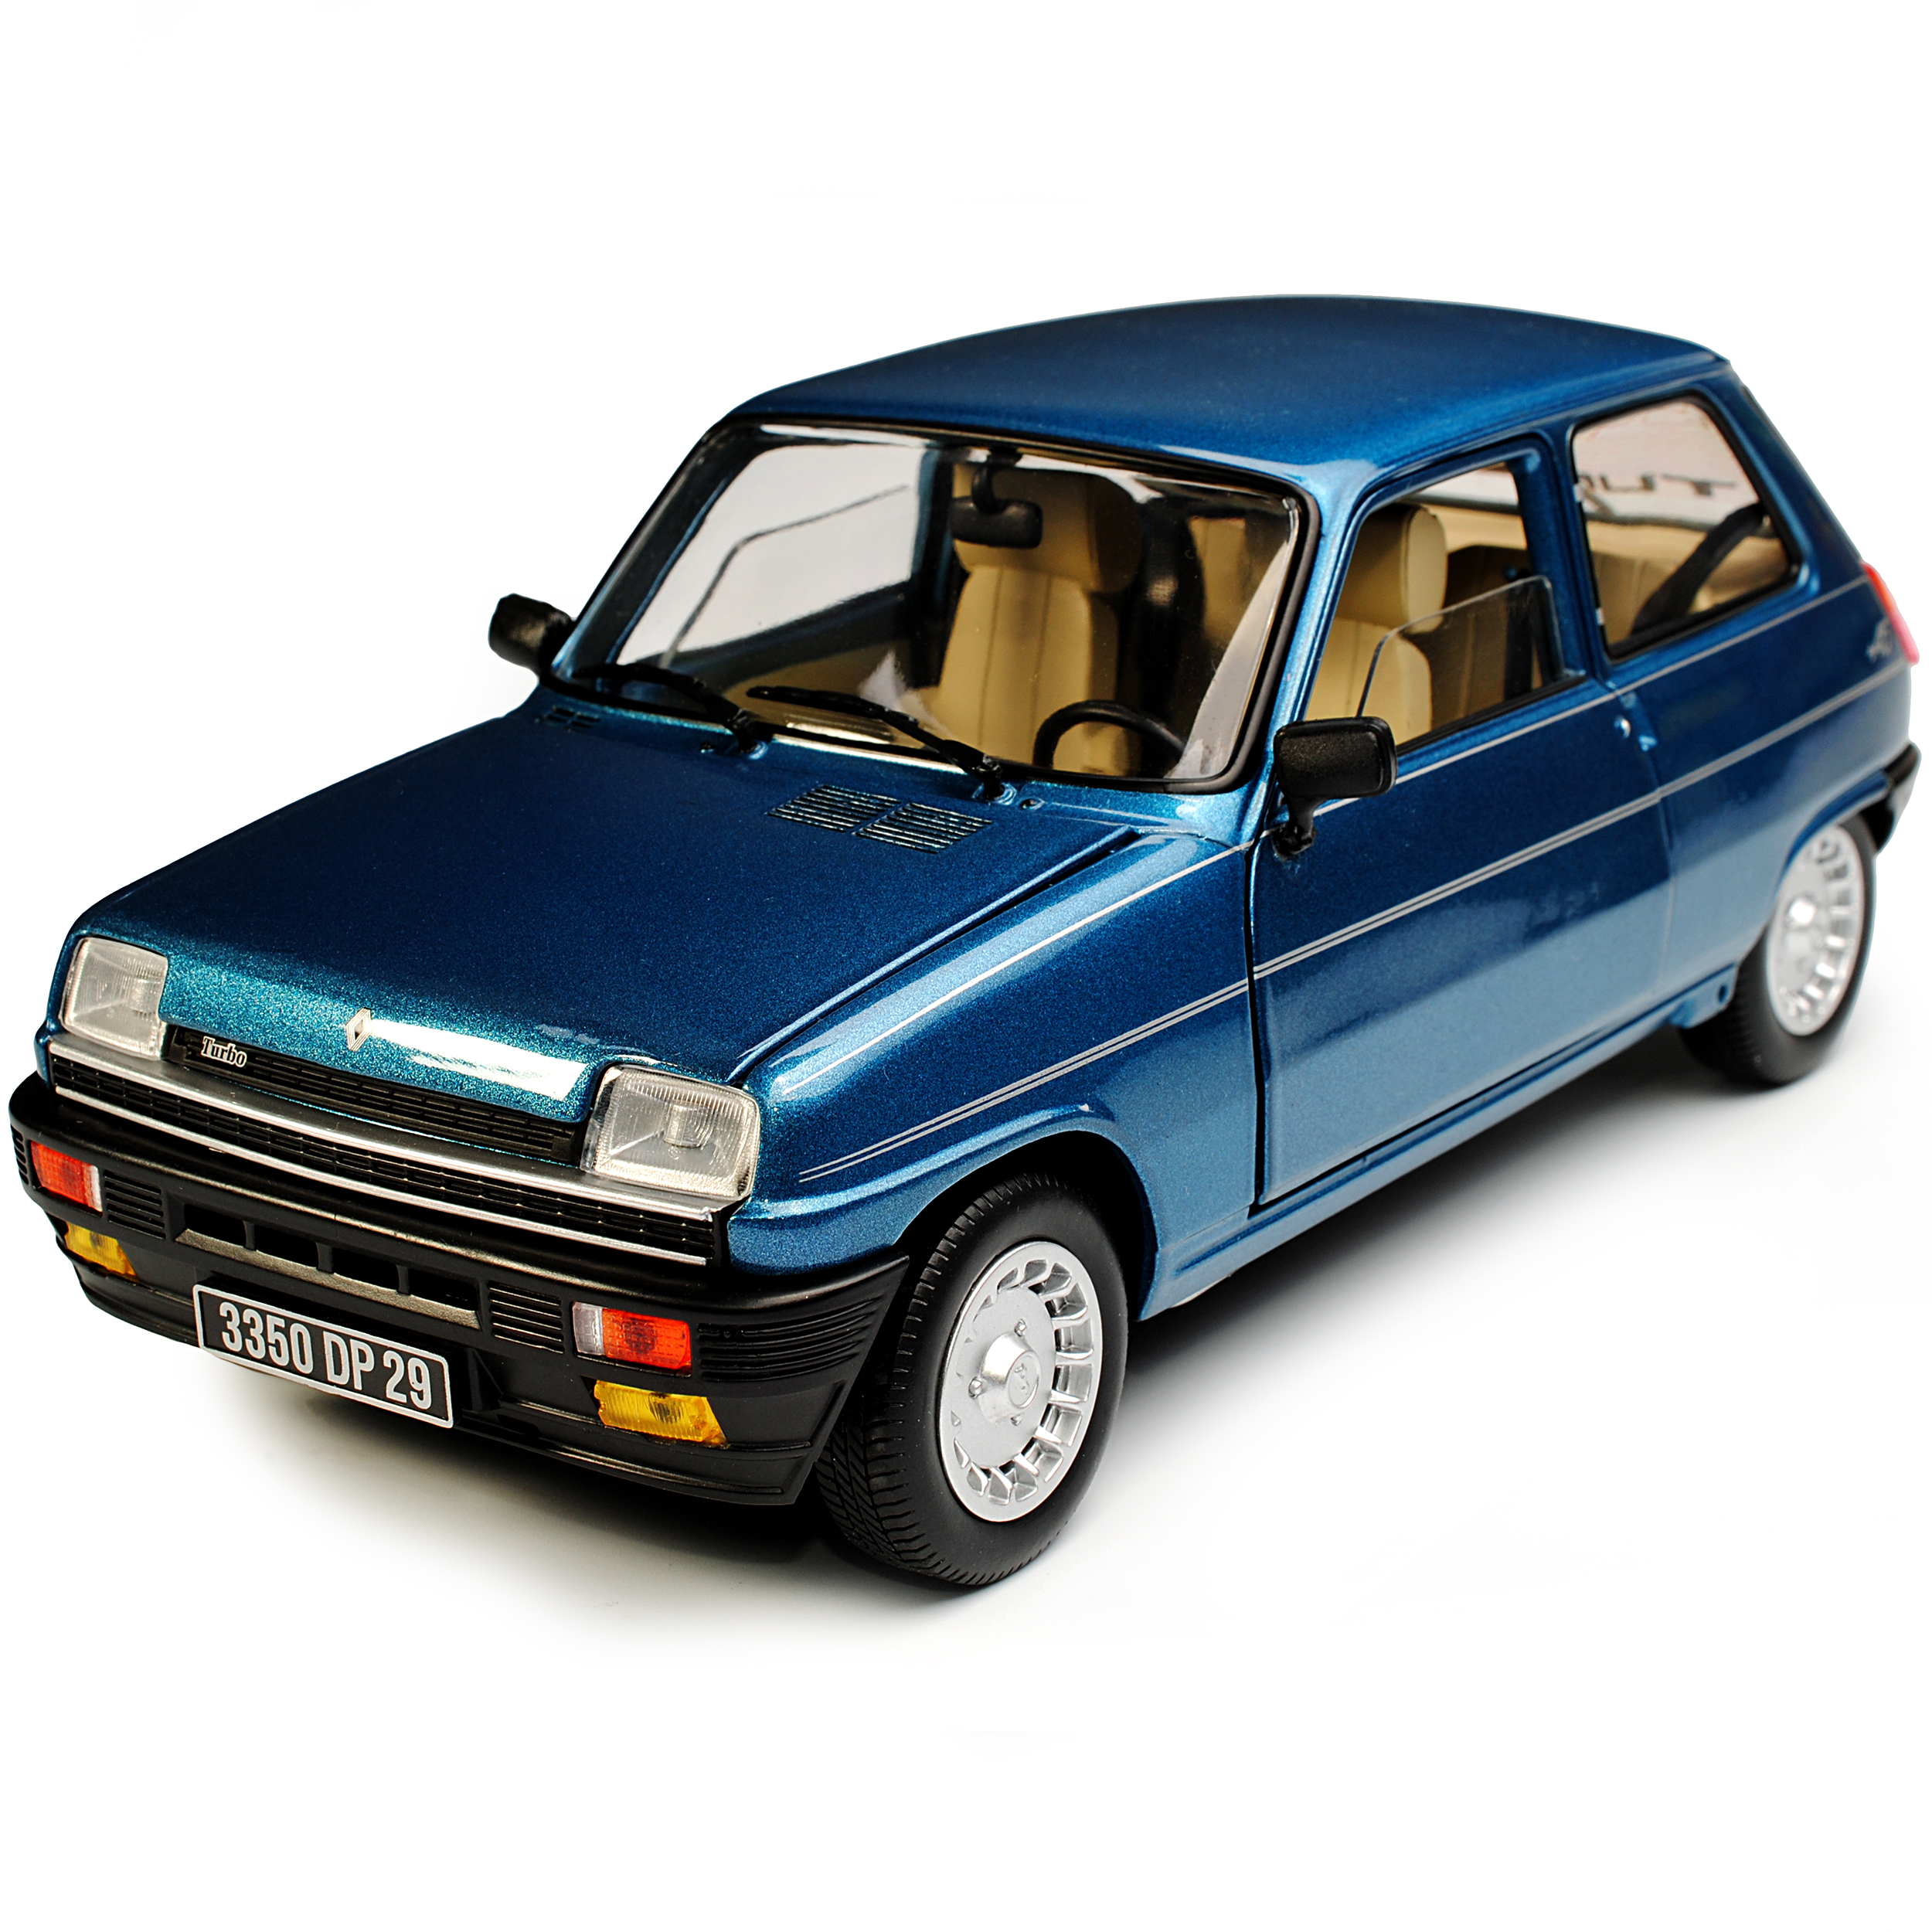 Renault 5 Turbo: Renault 5 R5 Alpine Turbo Blau 1. Generation 1972-1984 1